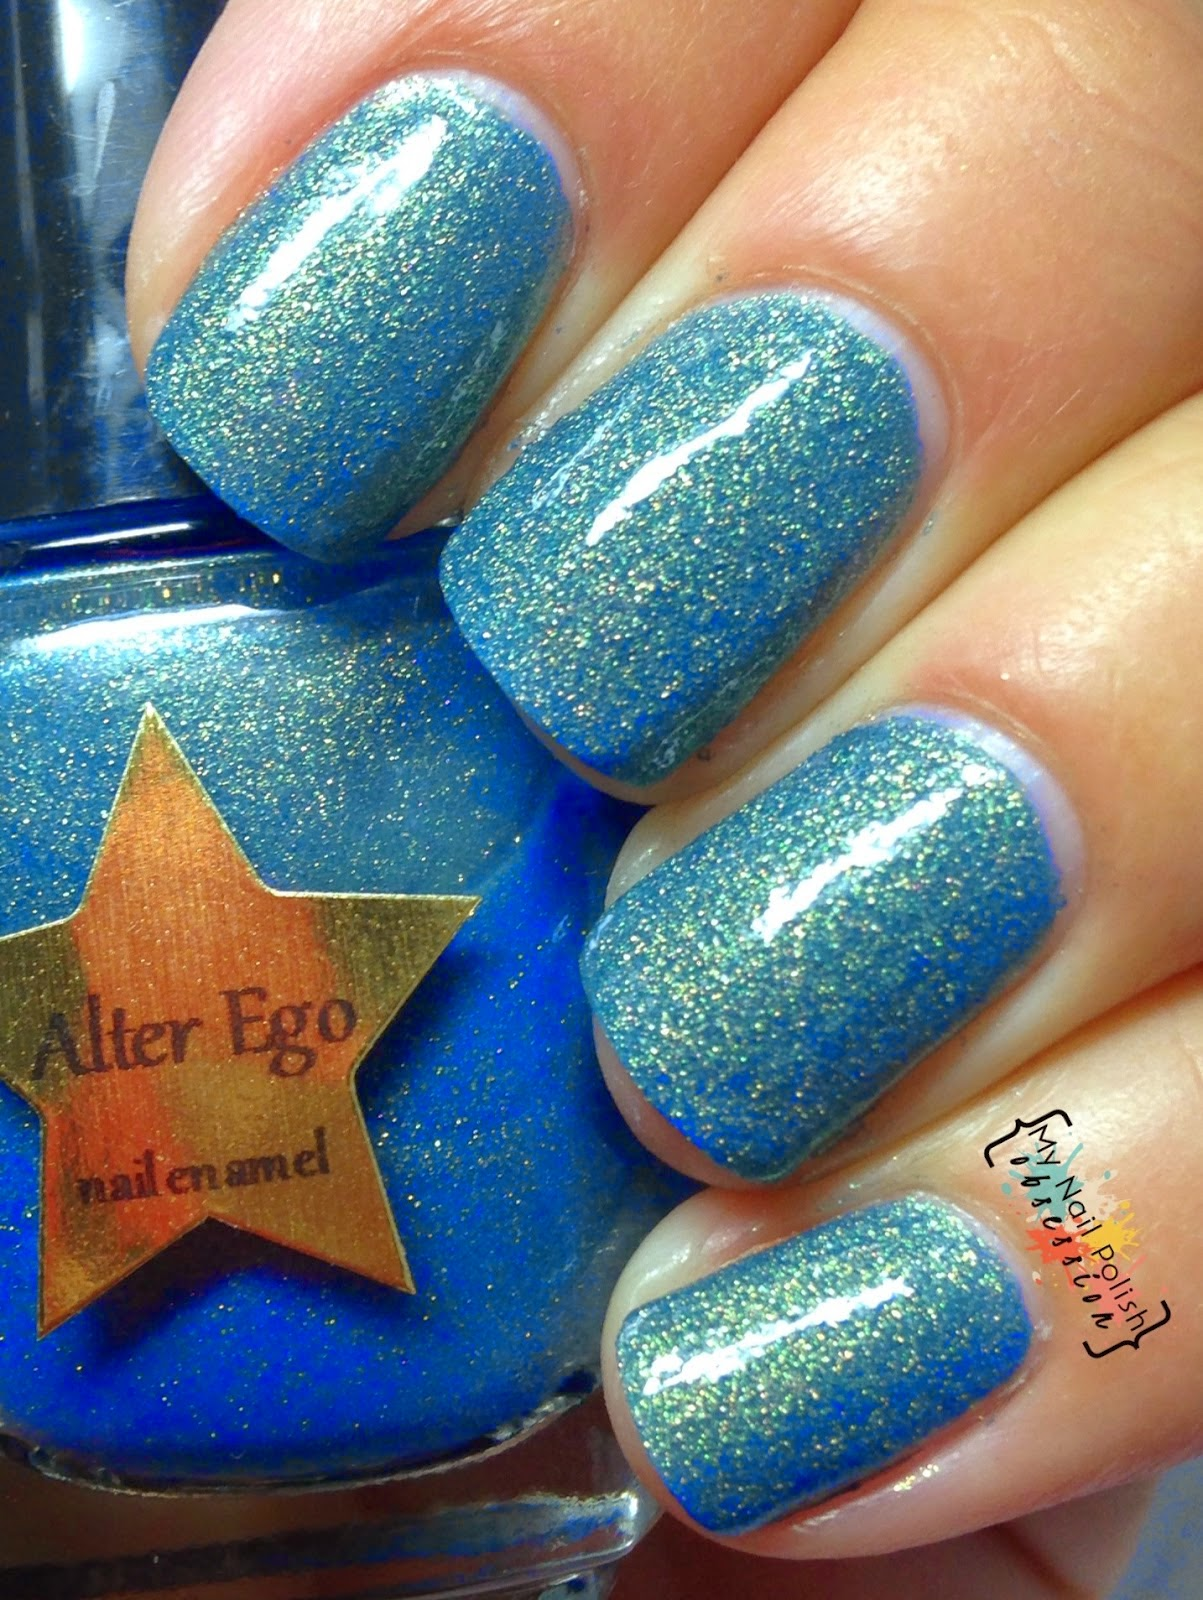 Alter Ego Nail Enamel Rows Her Boat